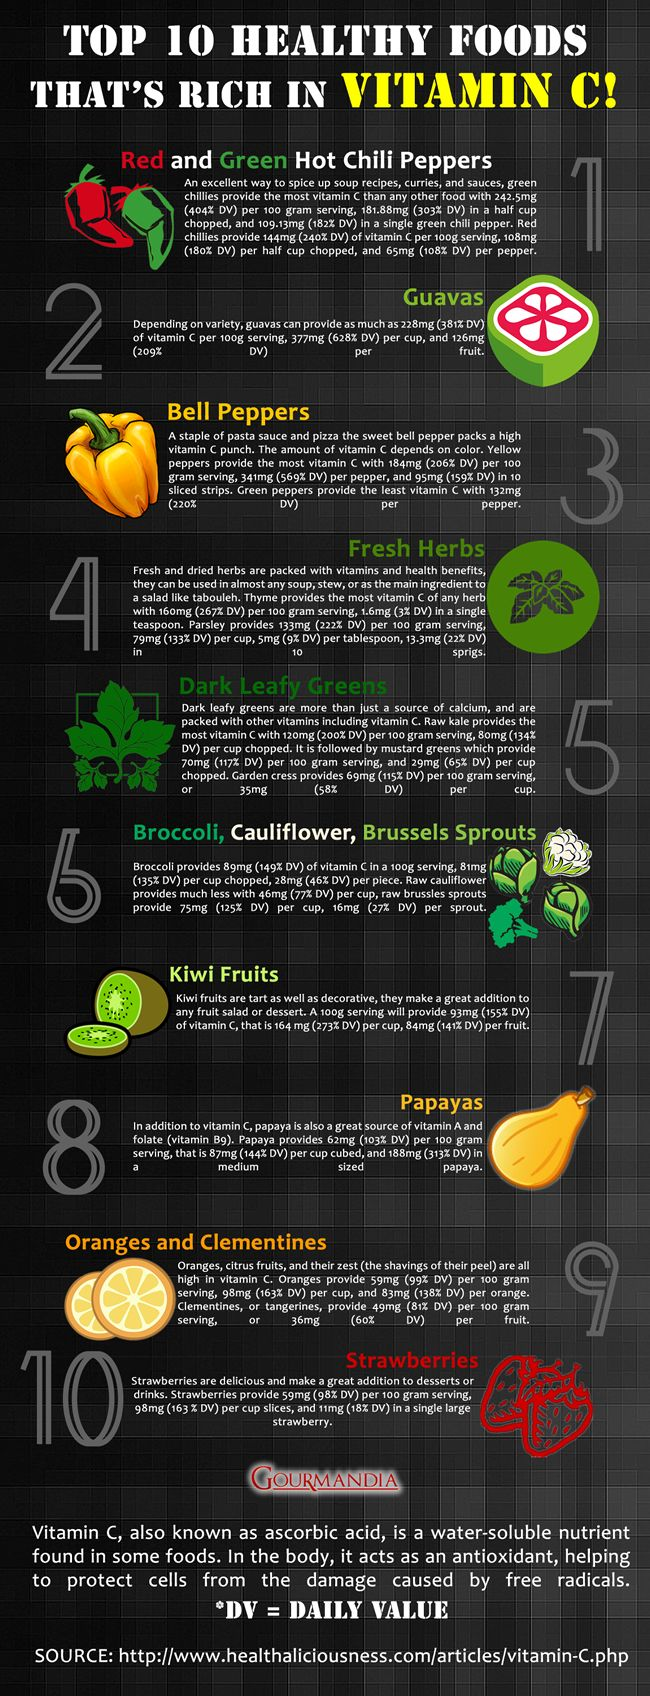 Top 10 Healthy Foods That's Rich In Vitamin C #Infographic #Food